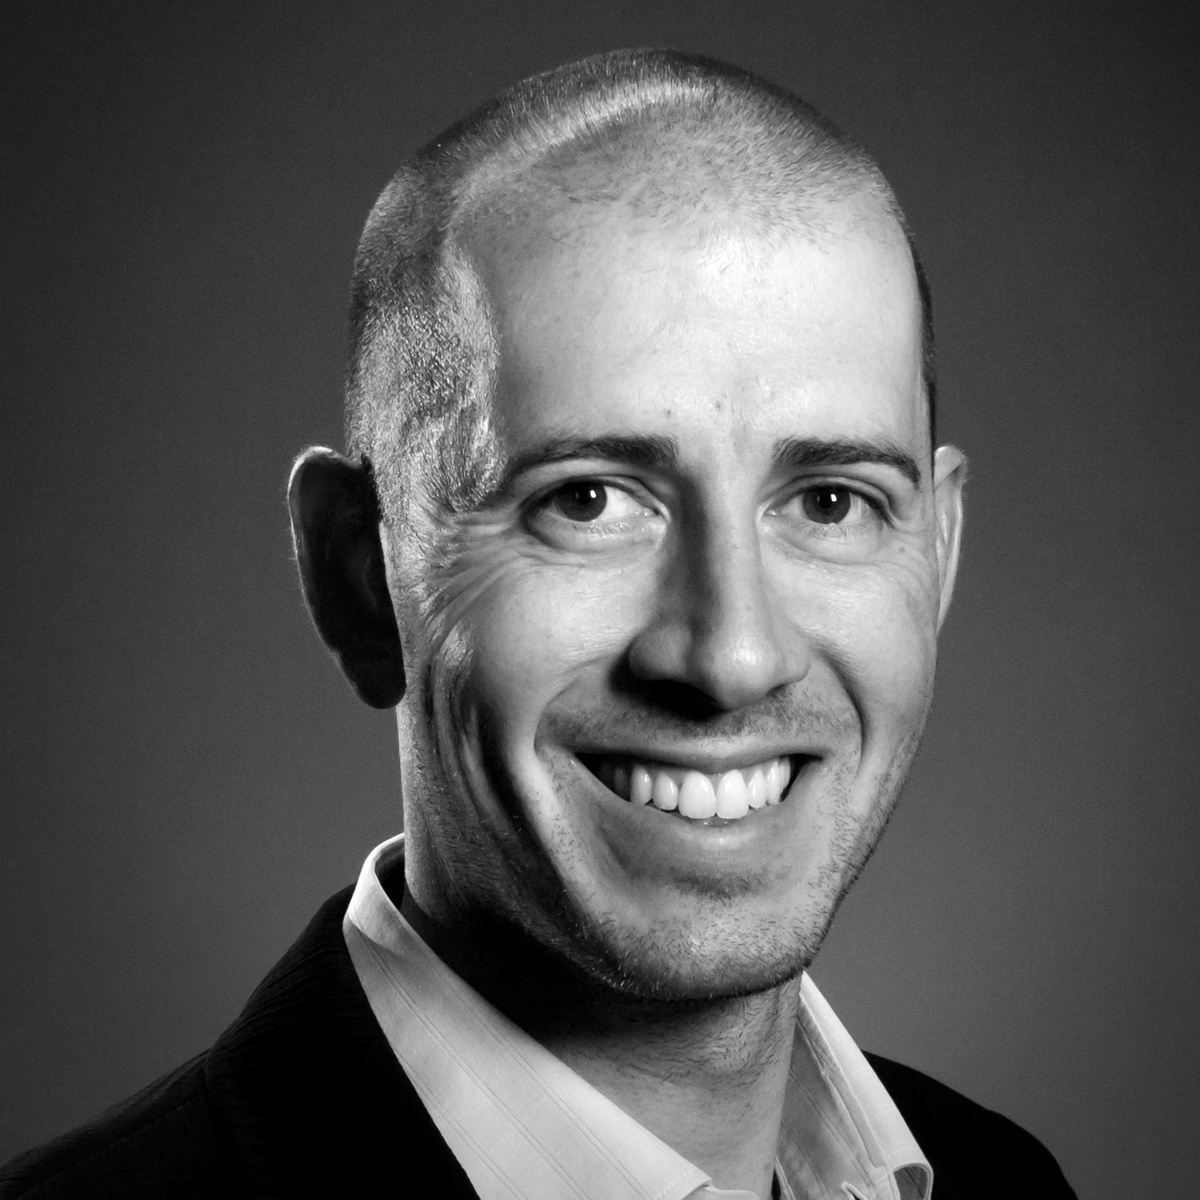 James Robert Lay is the Founder and CEO at Digital Growth Institute